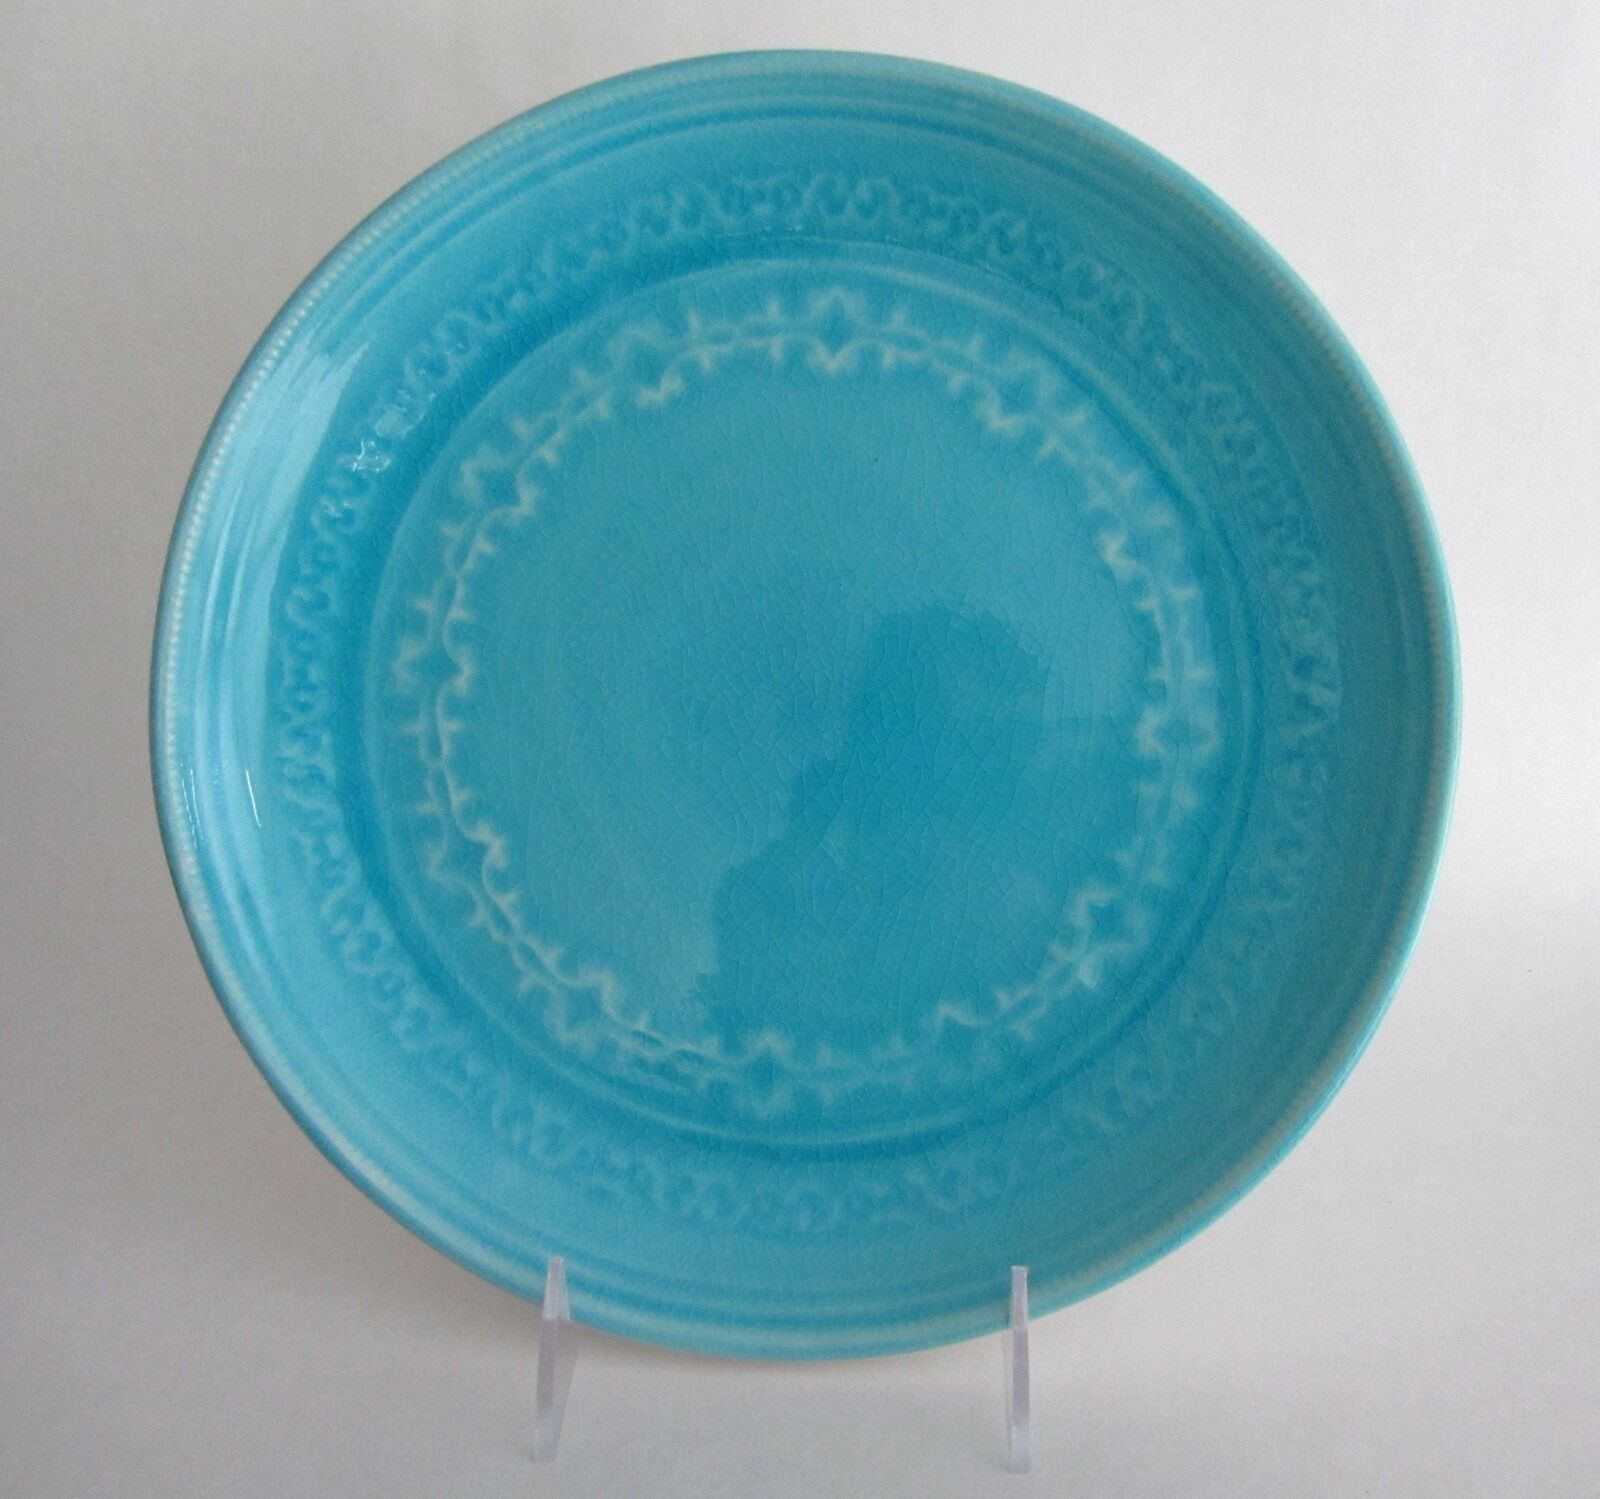 set  artistic accents crackled glass turquoise aqua blue  - set  artistic accents crackled glass turquoise aqua blue stoneware dinnerplate • £ set  artistic accents crackled glass turquoise aqua blue